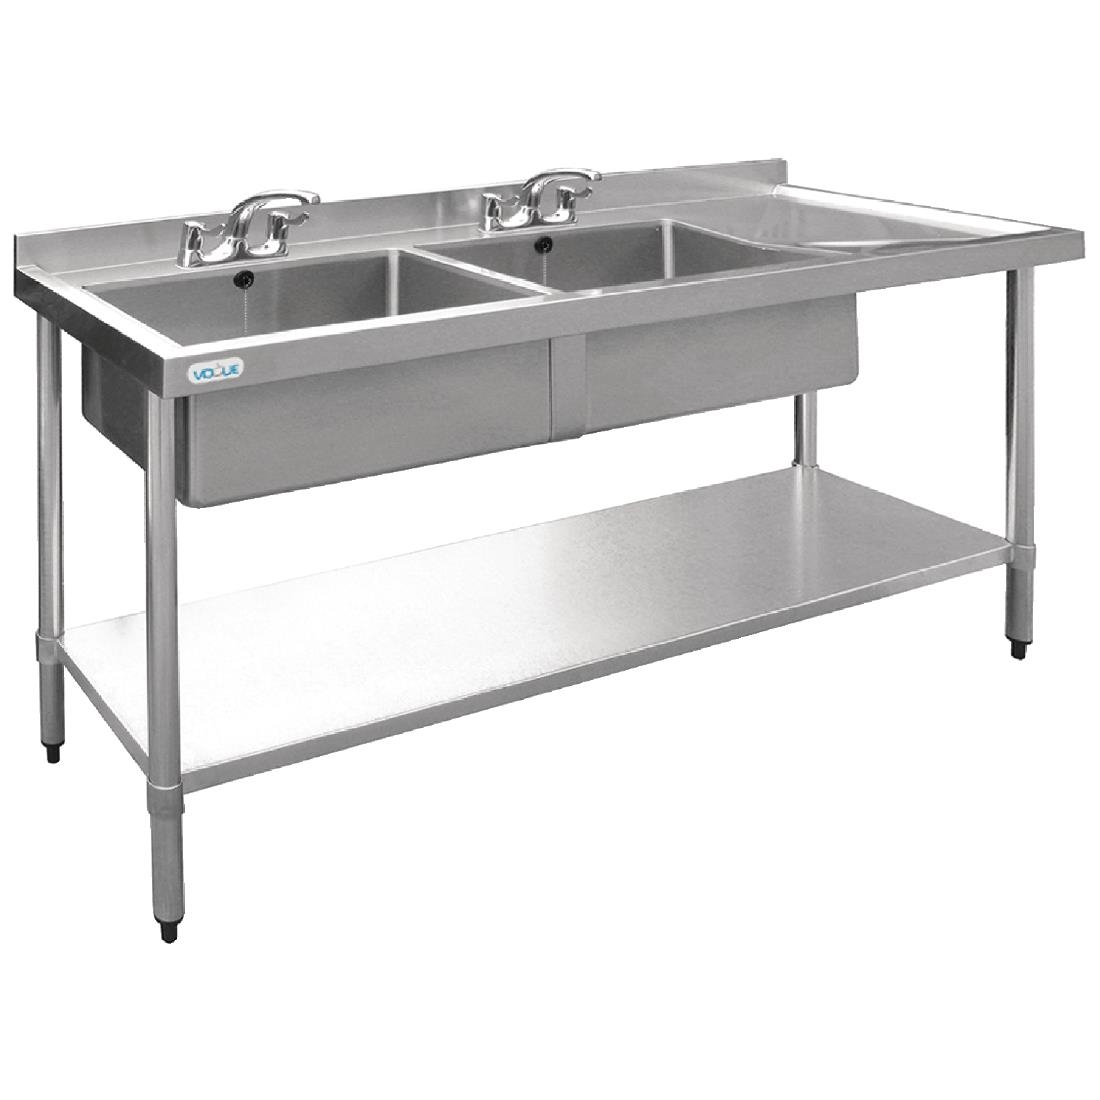 Charming ... Vogue Stainless Steel Sink Double Bowl With Right